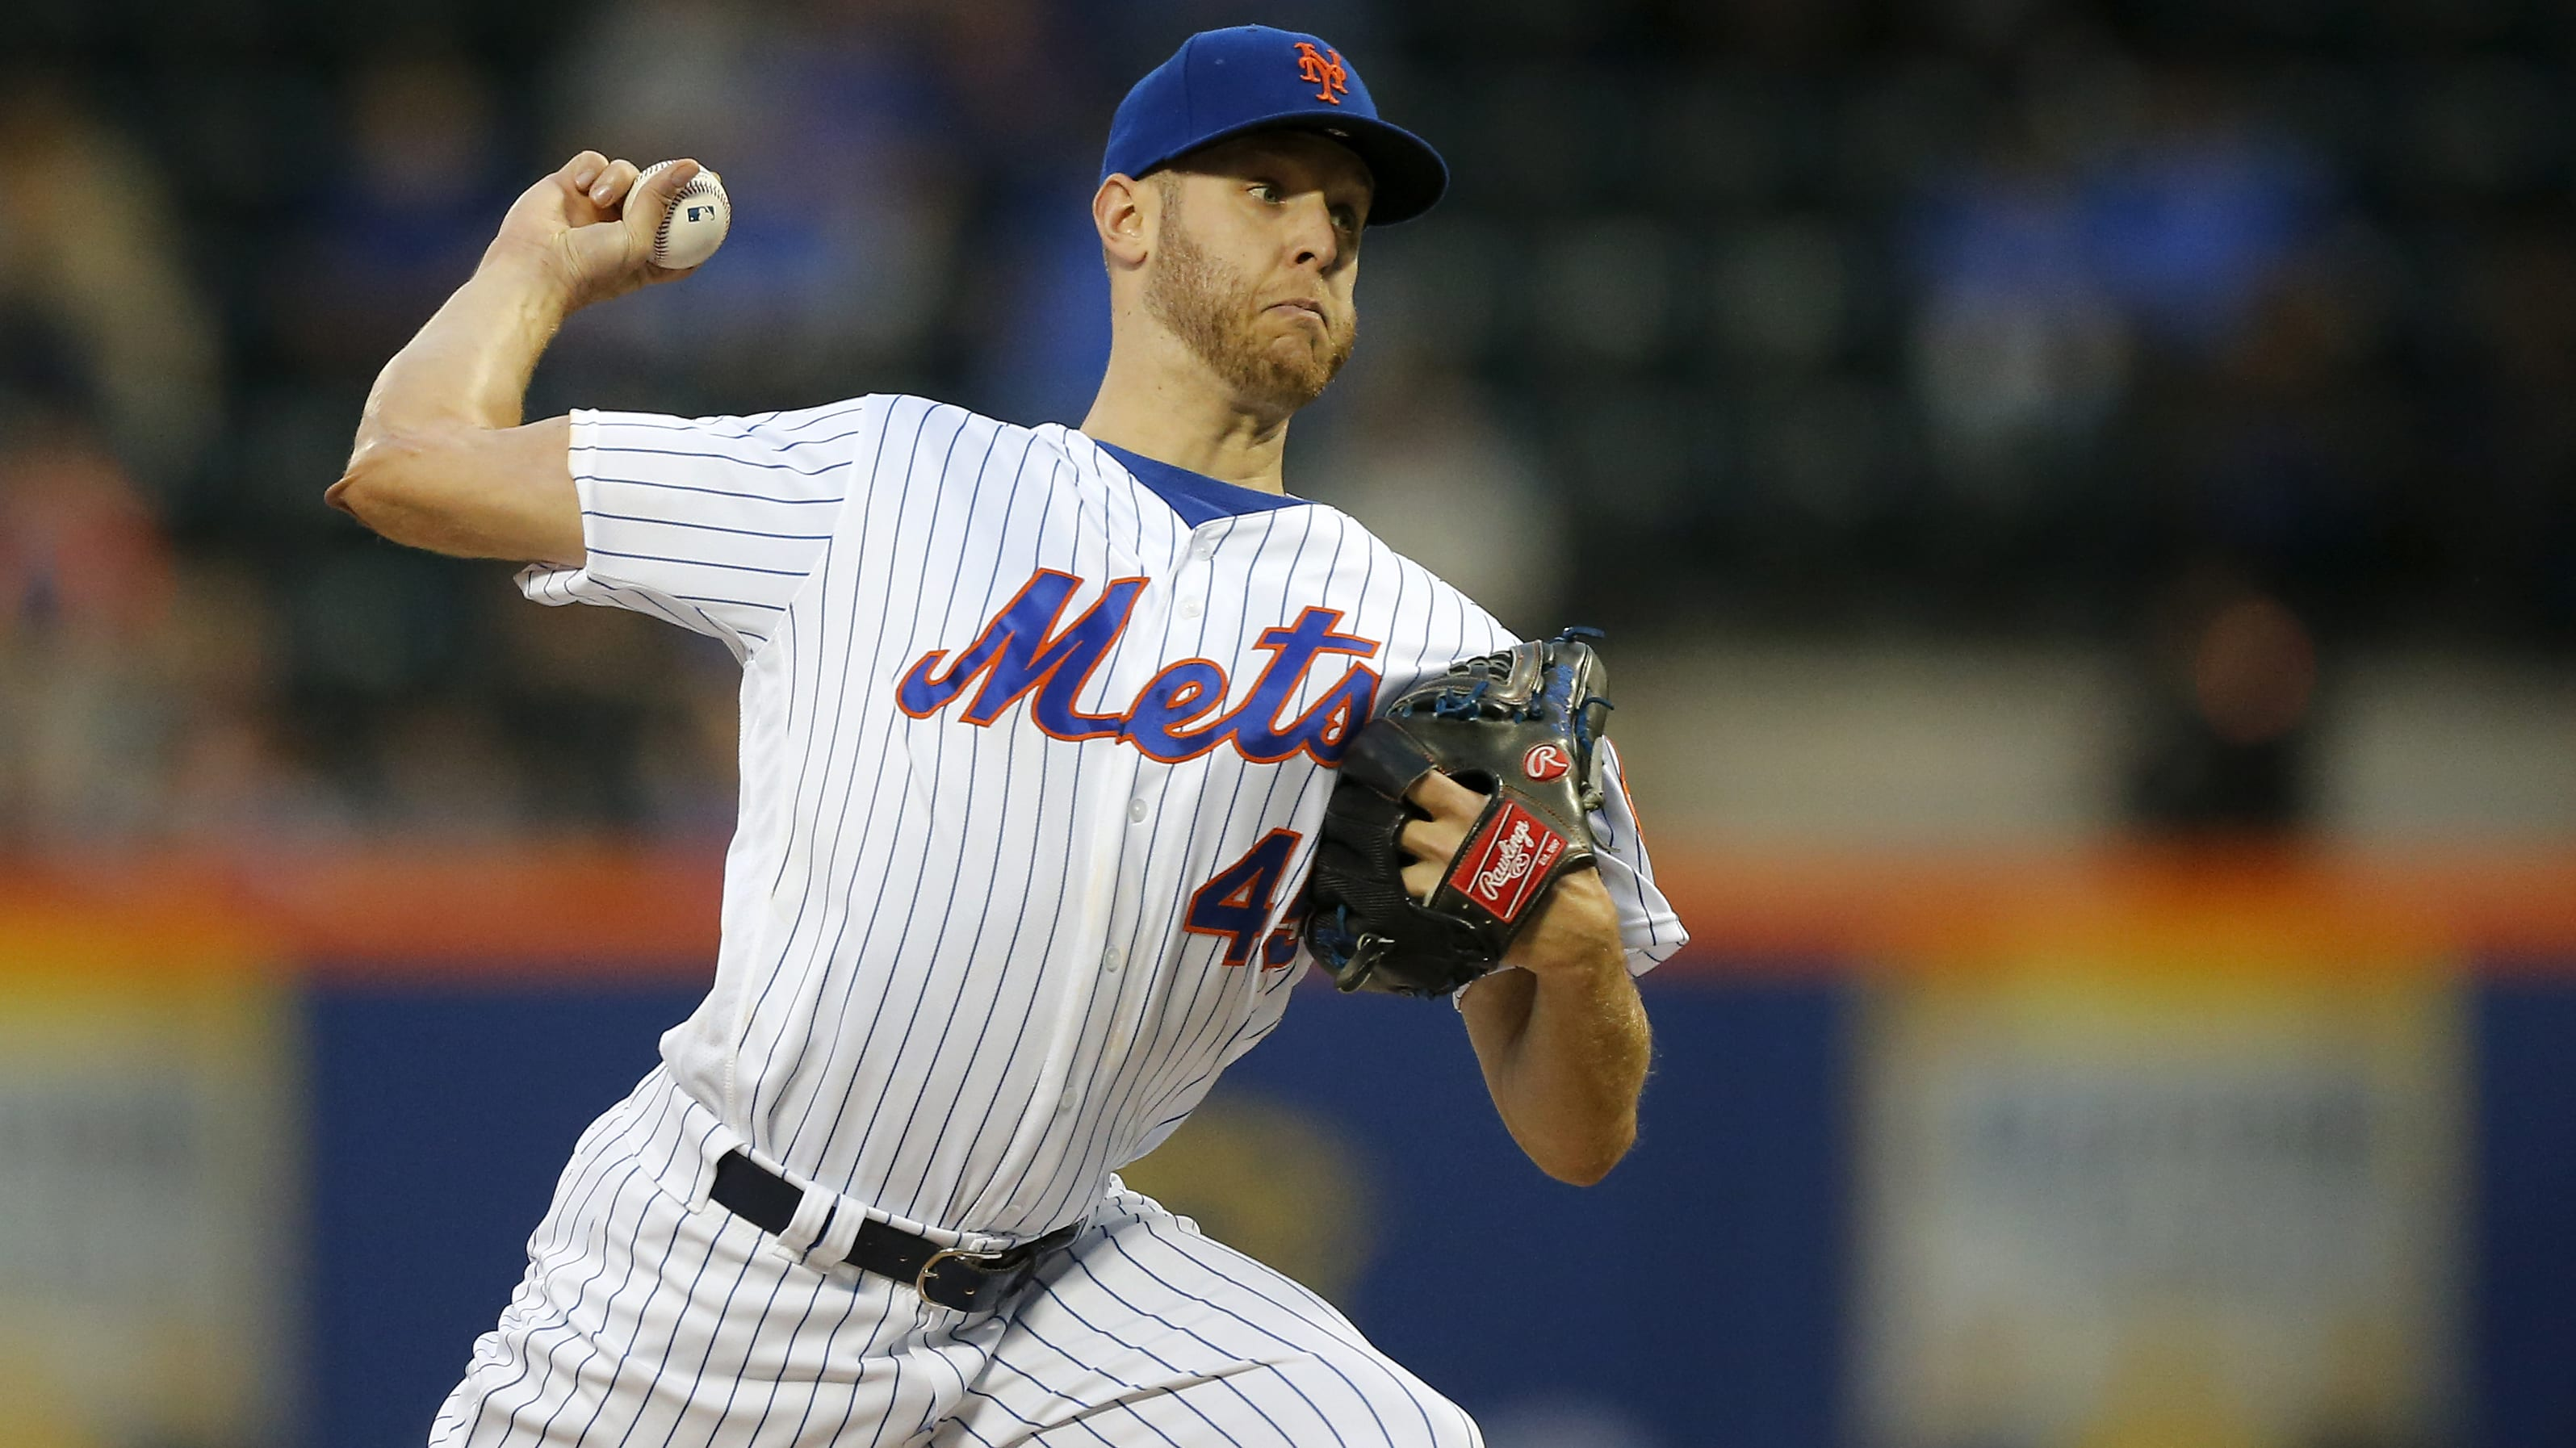 NEW YORK, NEW YORK - MAY 10:   Zack Wheeler #45 of the New York Mets delivers a pitch during the first inning against the Miami Marlins at Citi Field on May 10, 2019 in the Flushing neighborhood of the Queens borough of New York City. (Photo by Jim McIsaac/Getty Images)